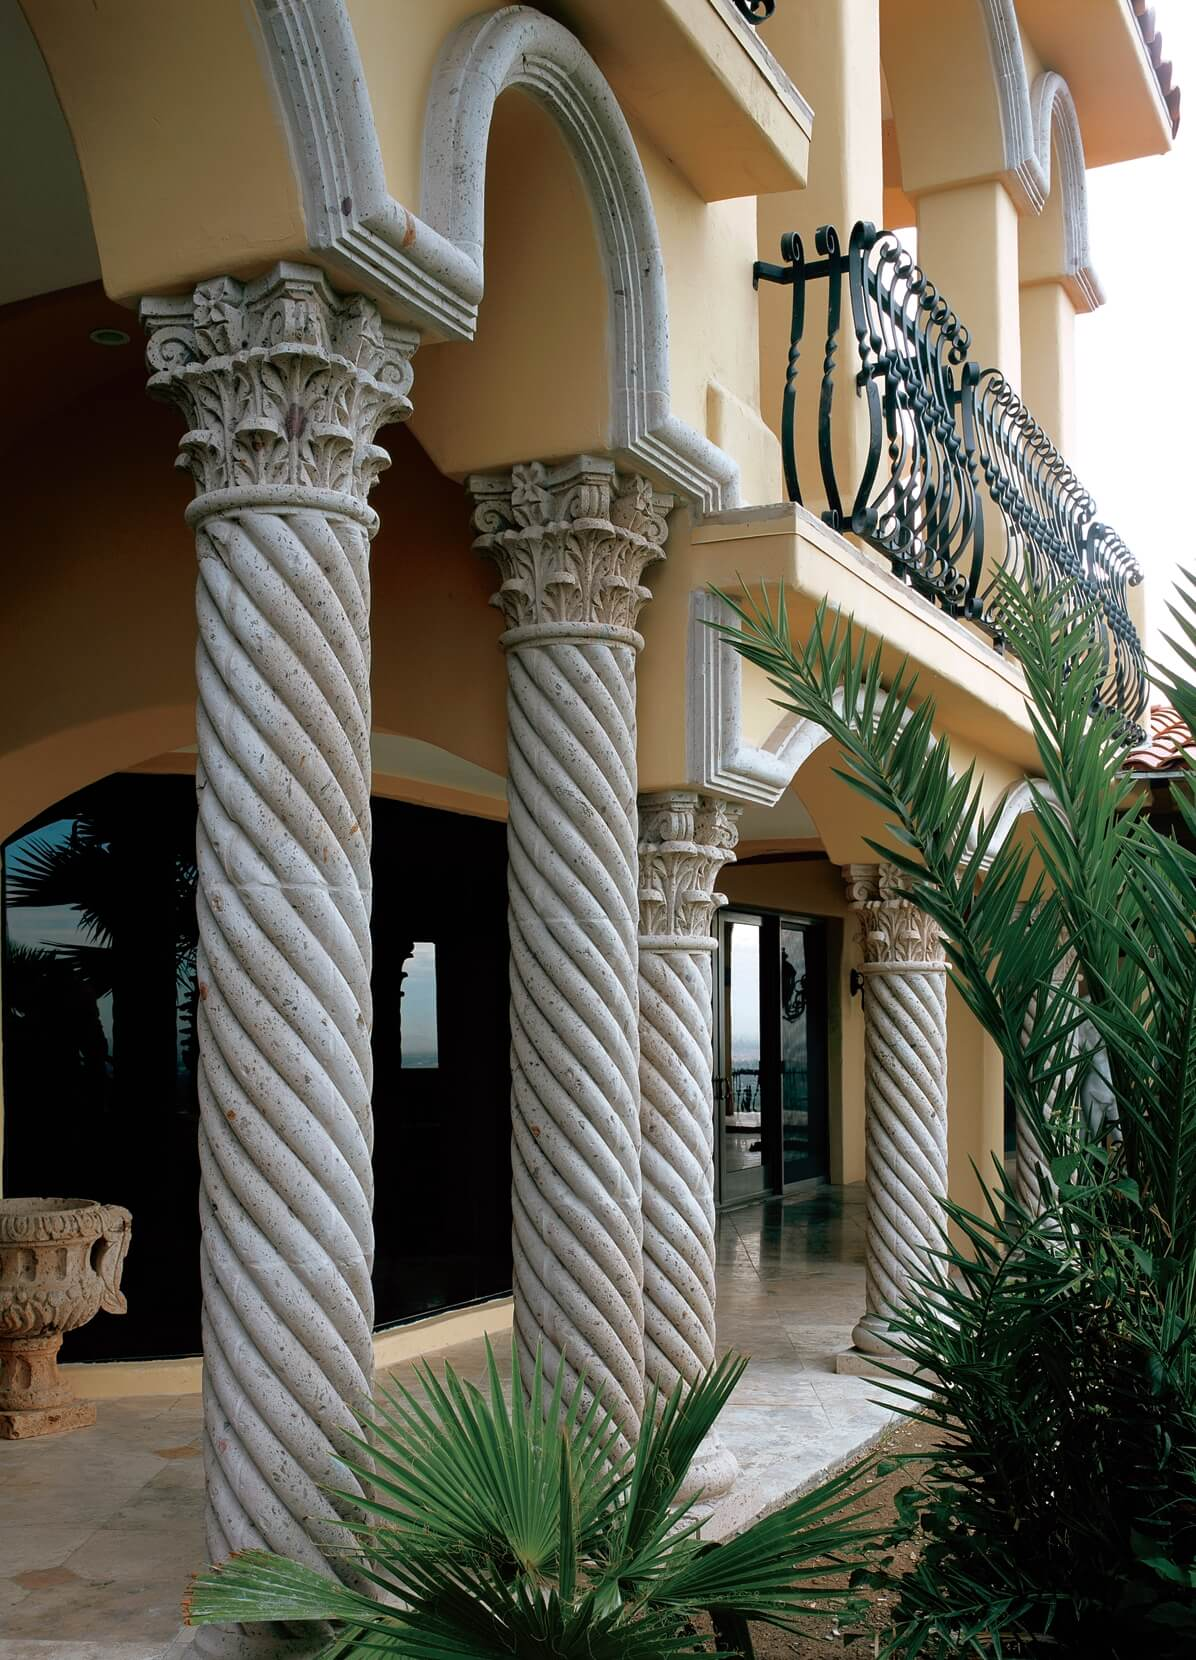 2-Corinthian-Capital-Columns-with-Twisted-Shafts-in-Pinon-Blanco-Cantera-Stone